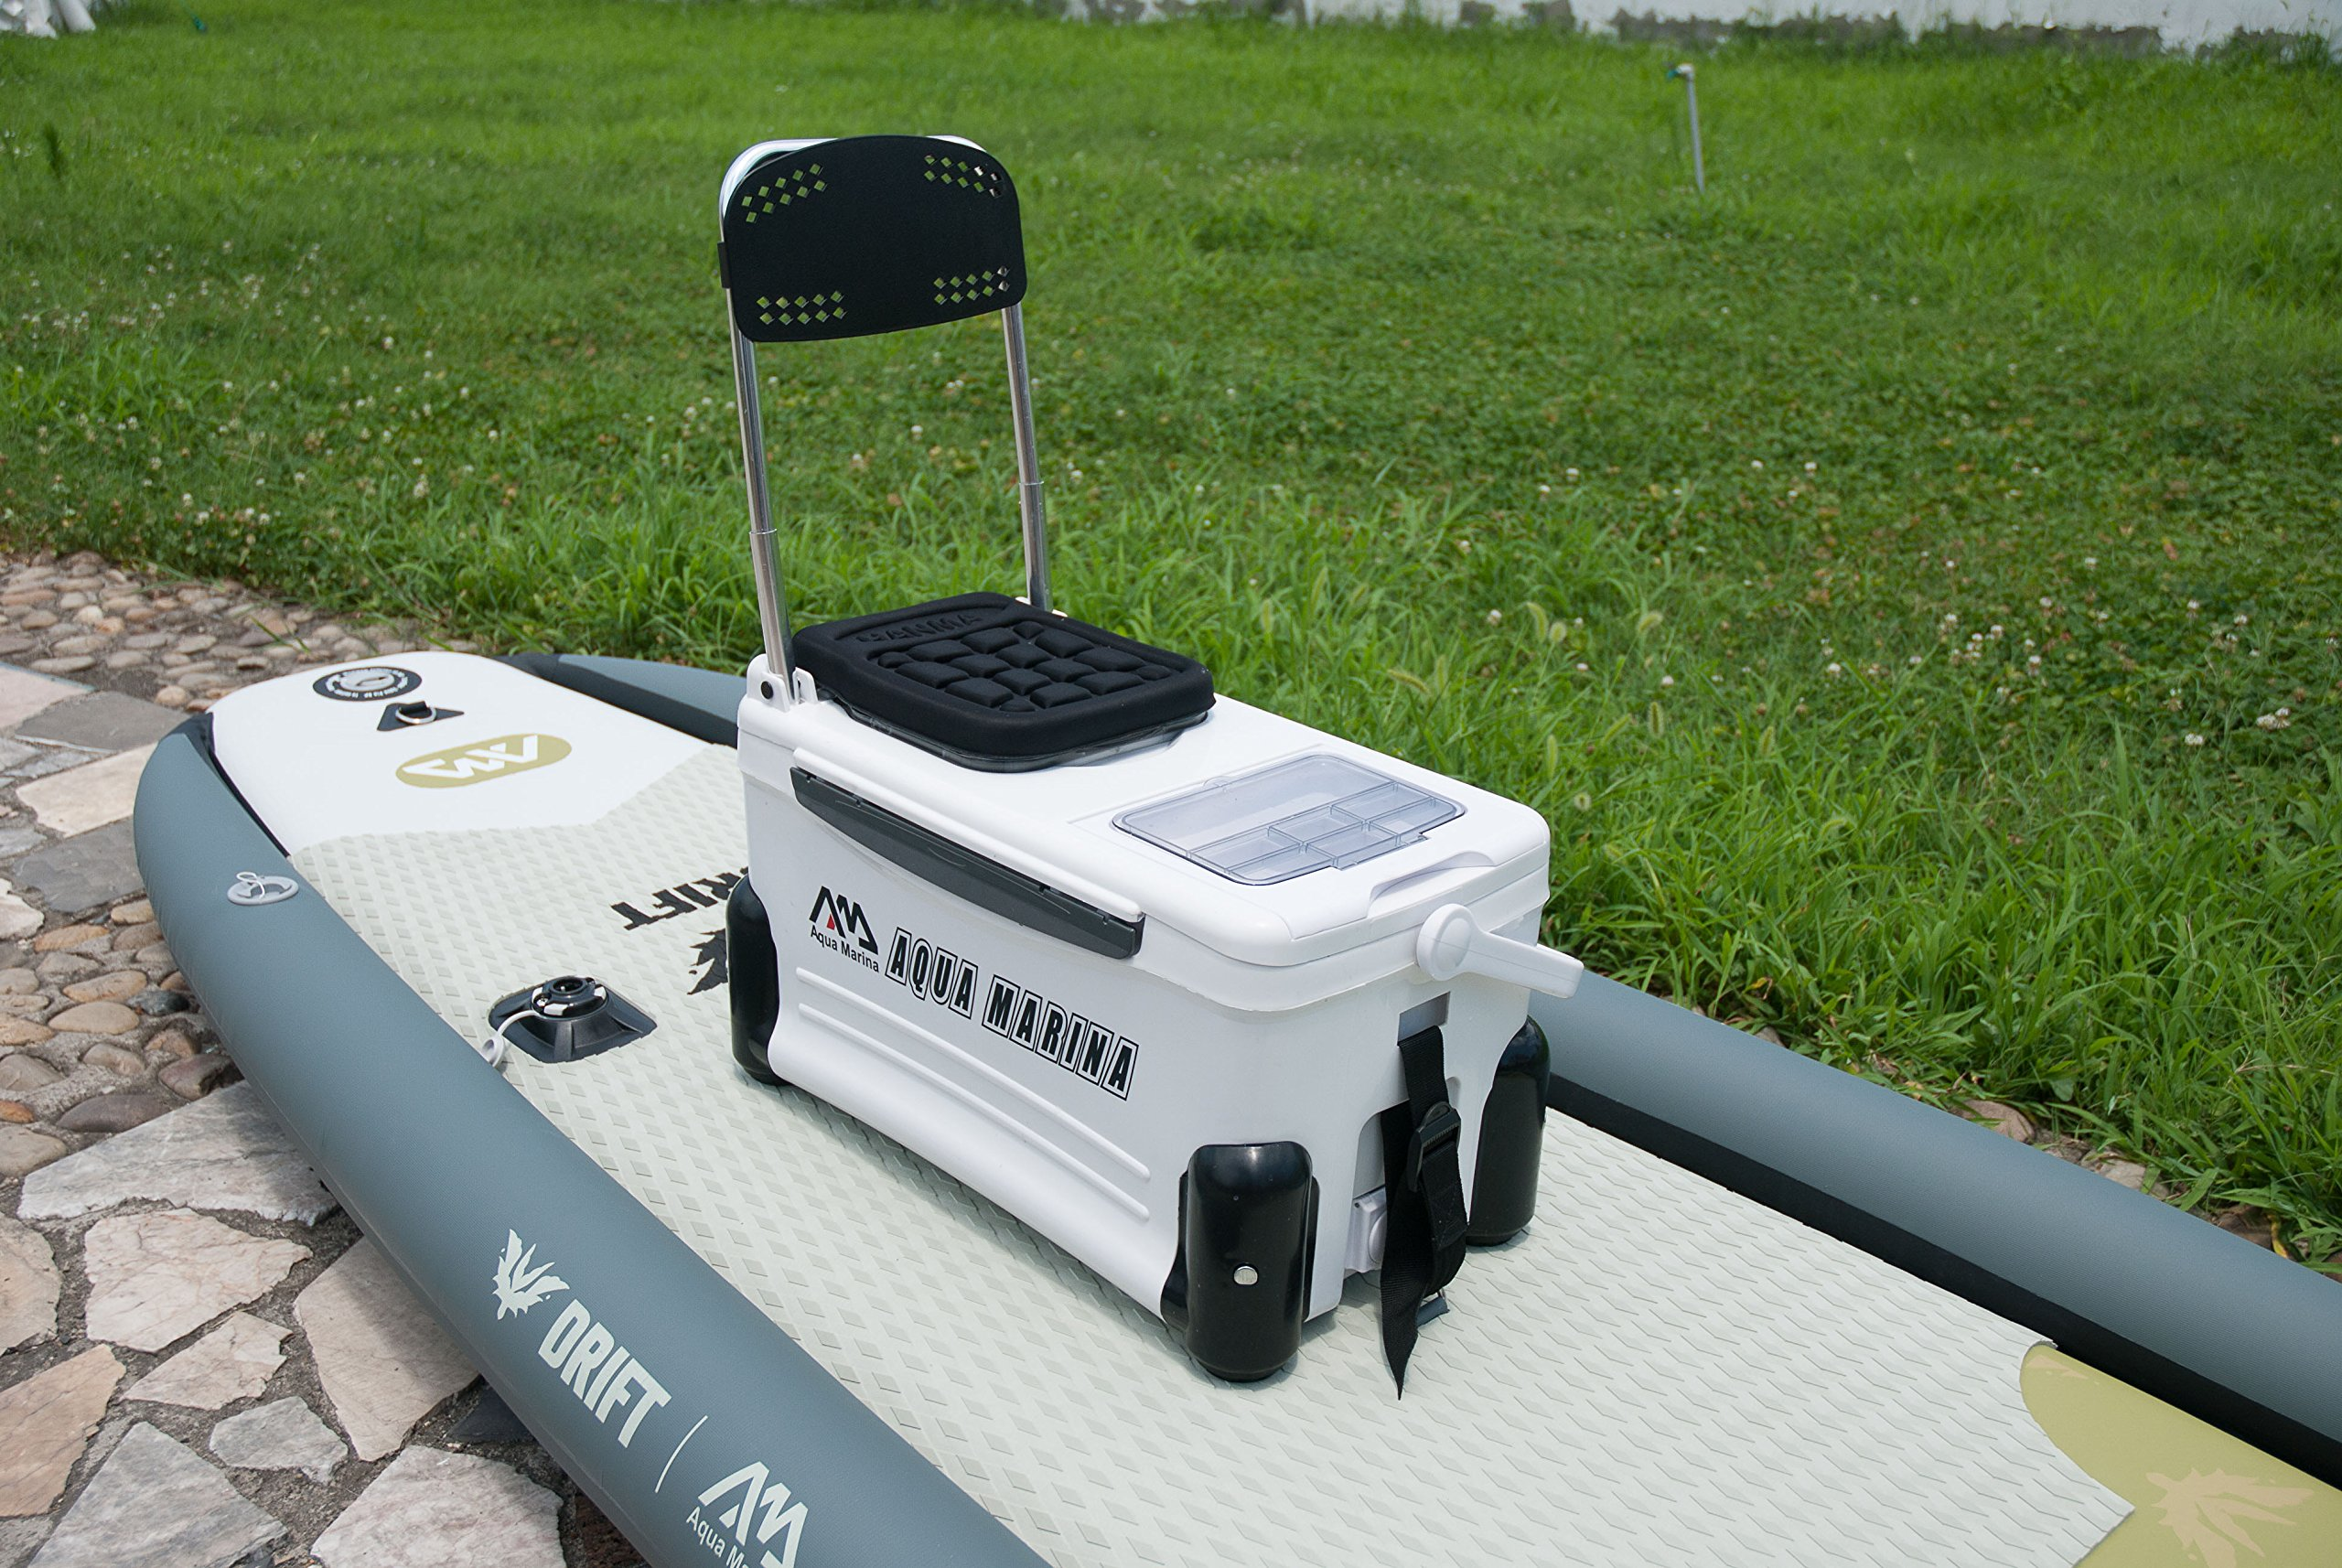 Aqua Marina Kool Isup Fishing Cooler with Highback Support,